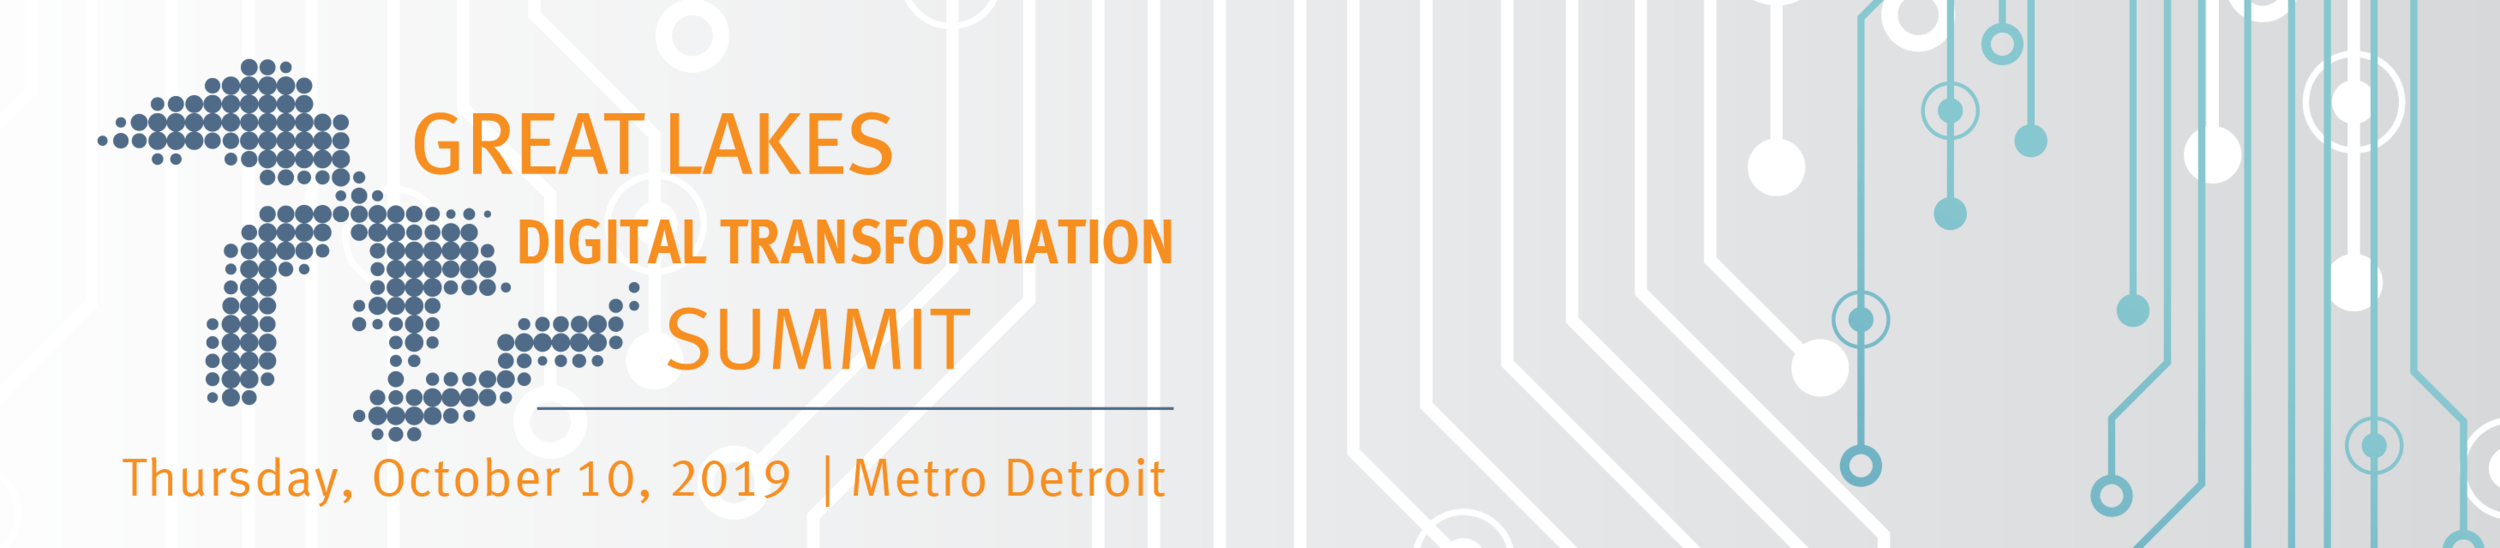 Great Lakes Digital Transformation Summit